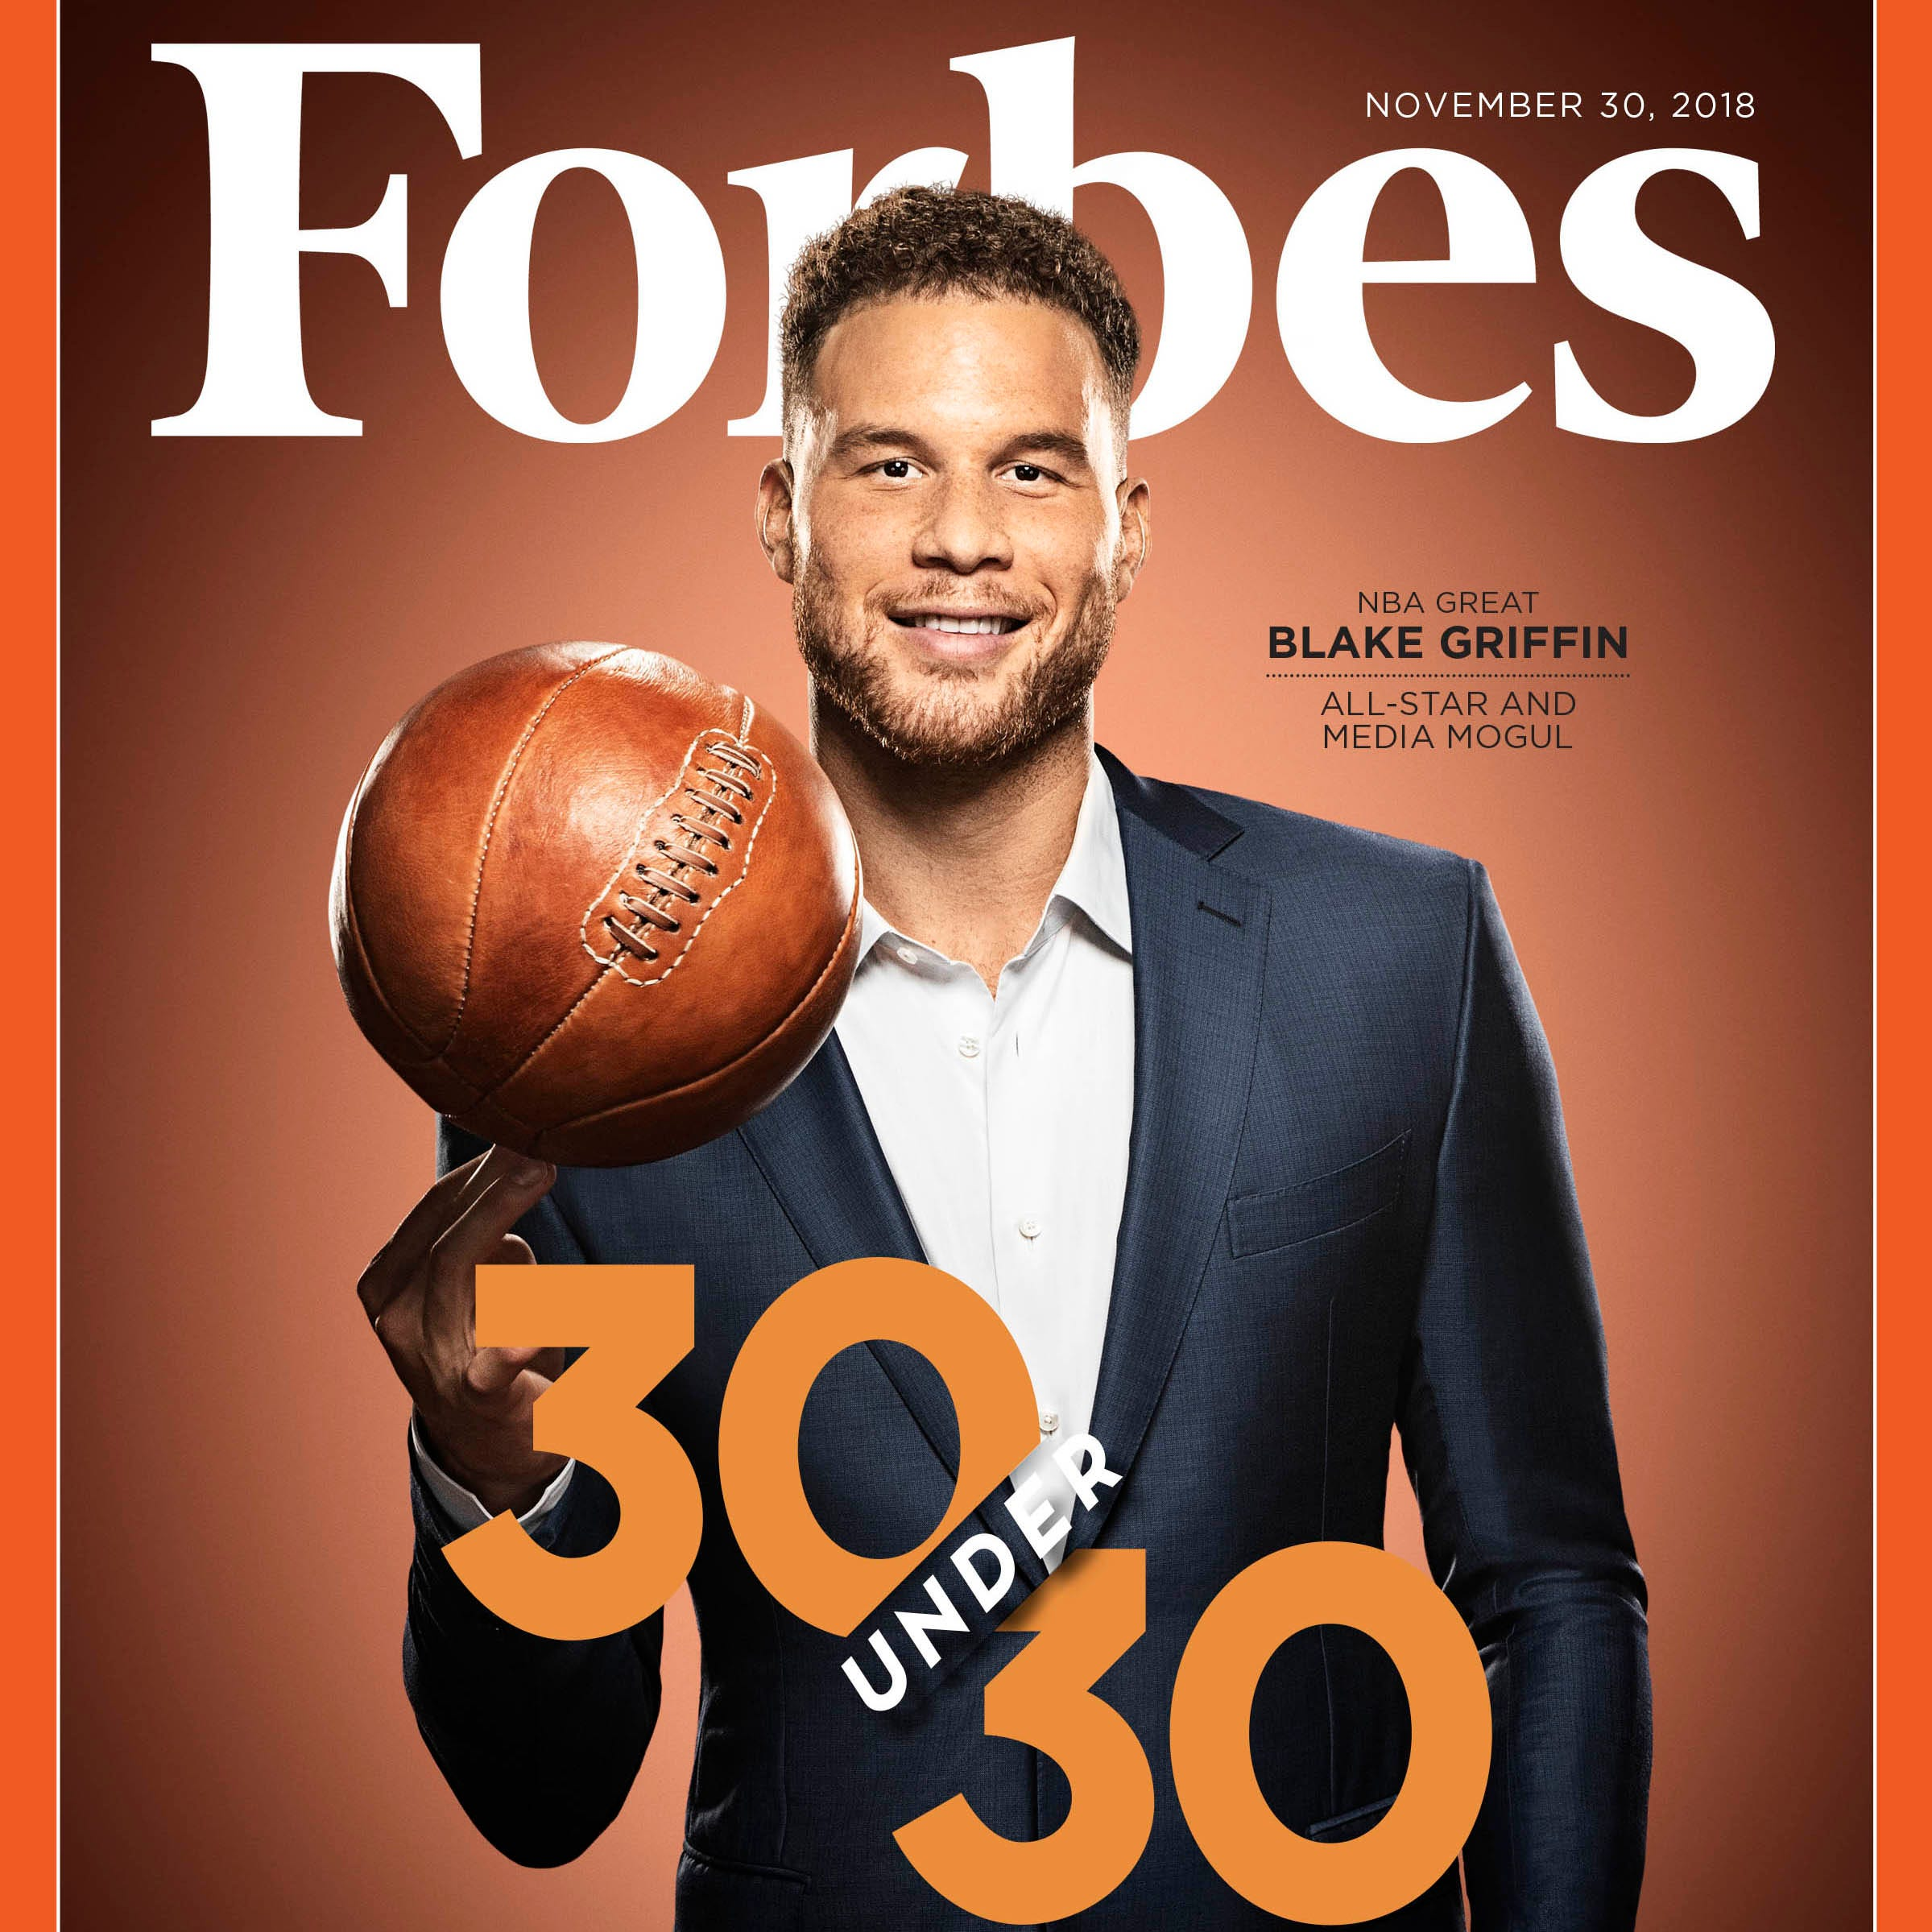 Detroit Pistons' Blake Griffin headlines 2019 Forbes 30 Under 30 list